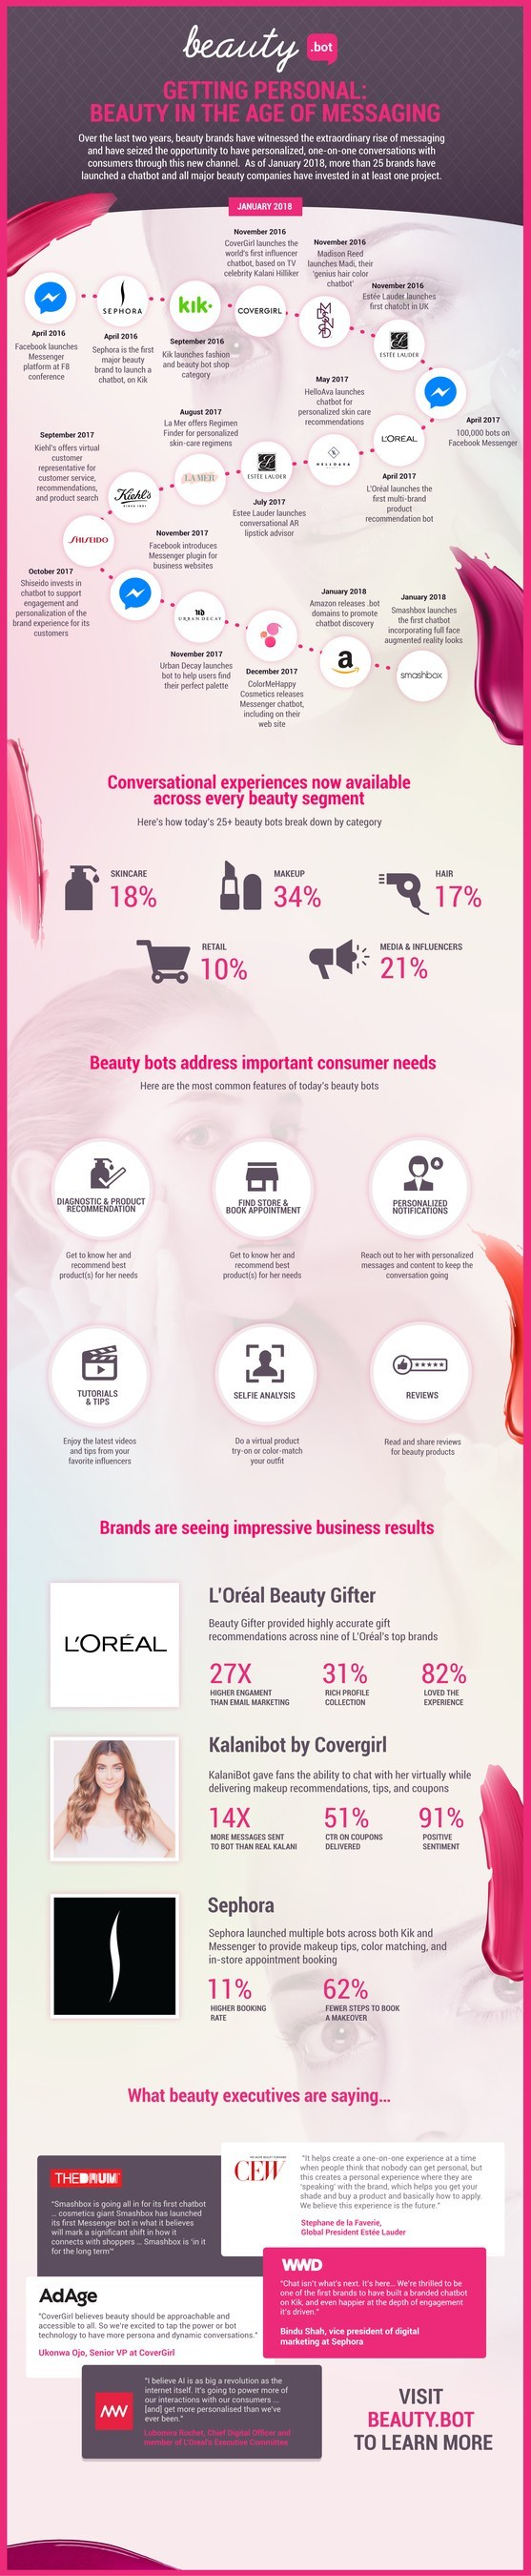 "The beauty industry has readily adopted the conversational marketing technology provided by bots. These industry developments are summarized in an infographic called ""Getting Personal: Beauty in the Age of Messaging"" available at https://www.beauty.bot/infographic/. (CNW Group/Automat Technologies, Inc)"